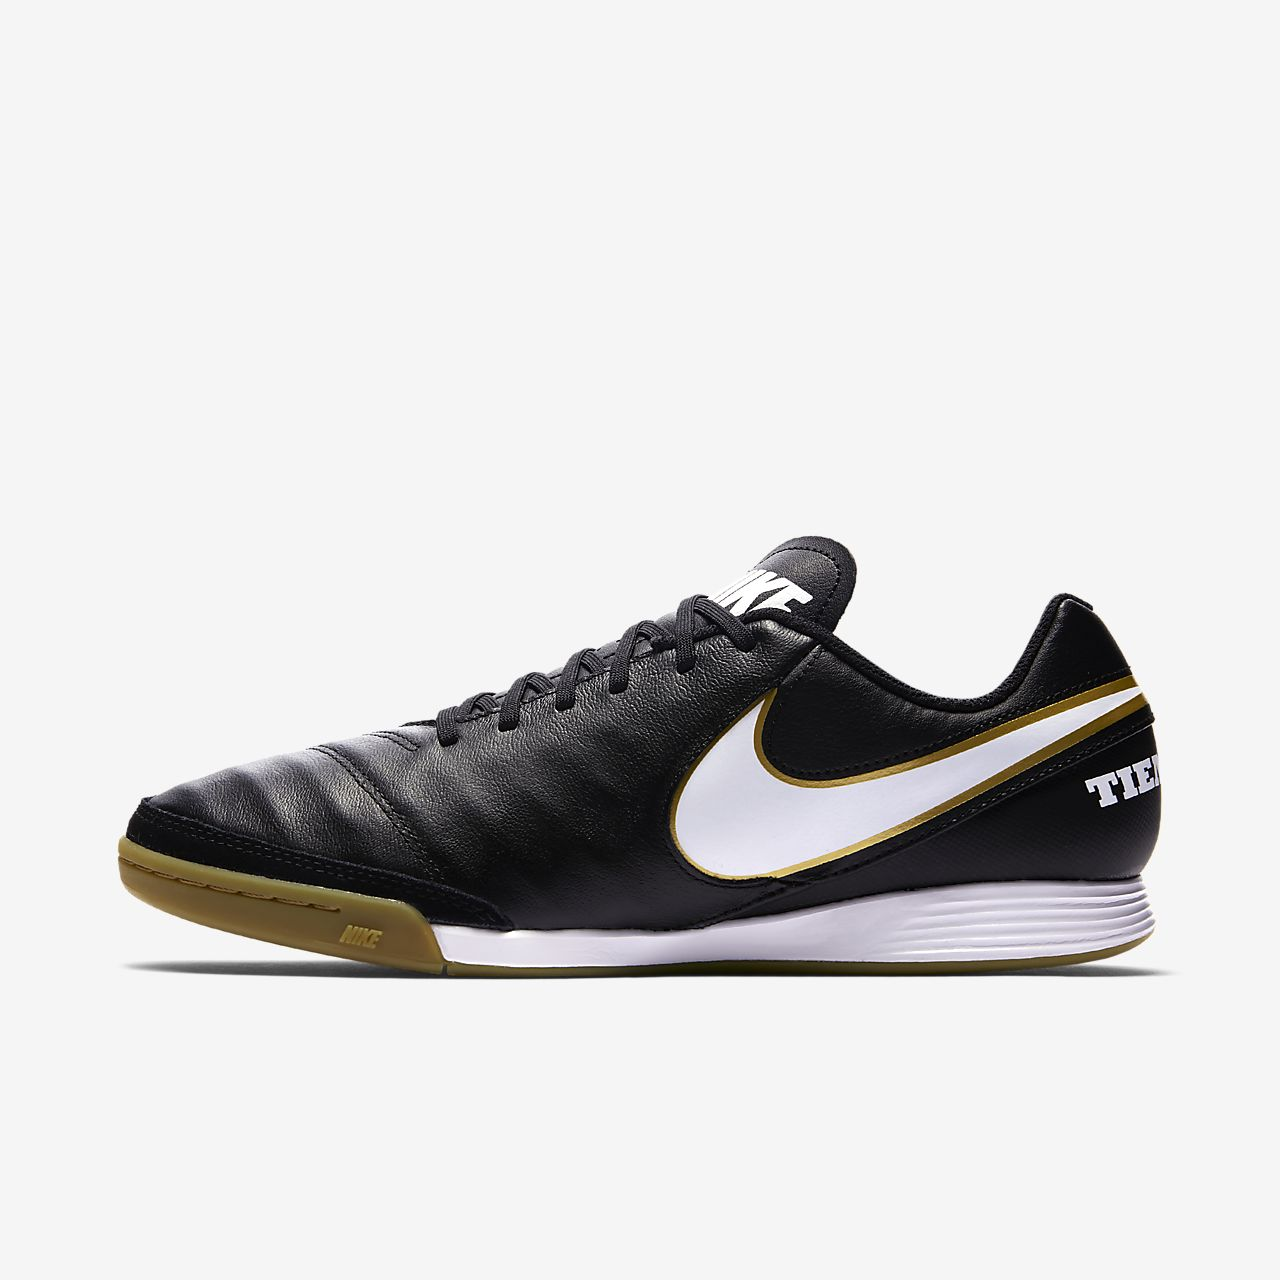 ... Nike Tiempo Genio II Leather Indoor/Court Football Shoe